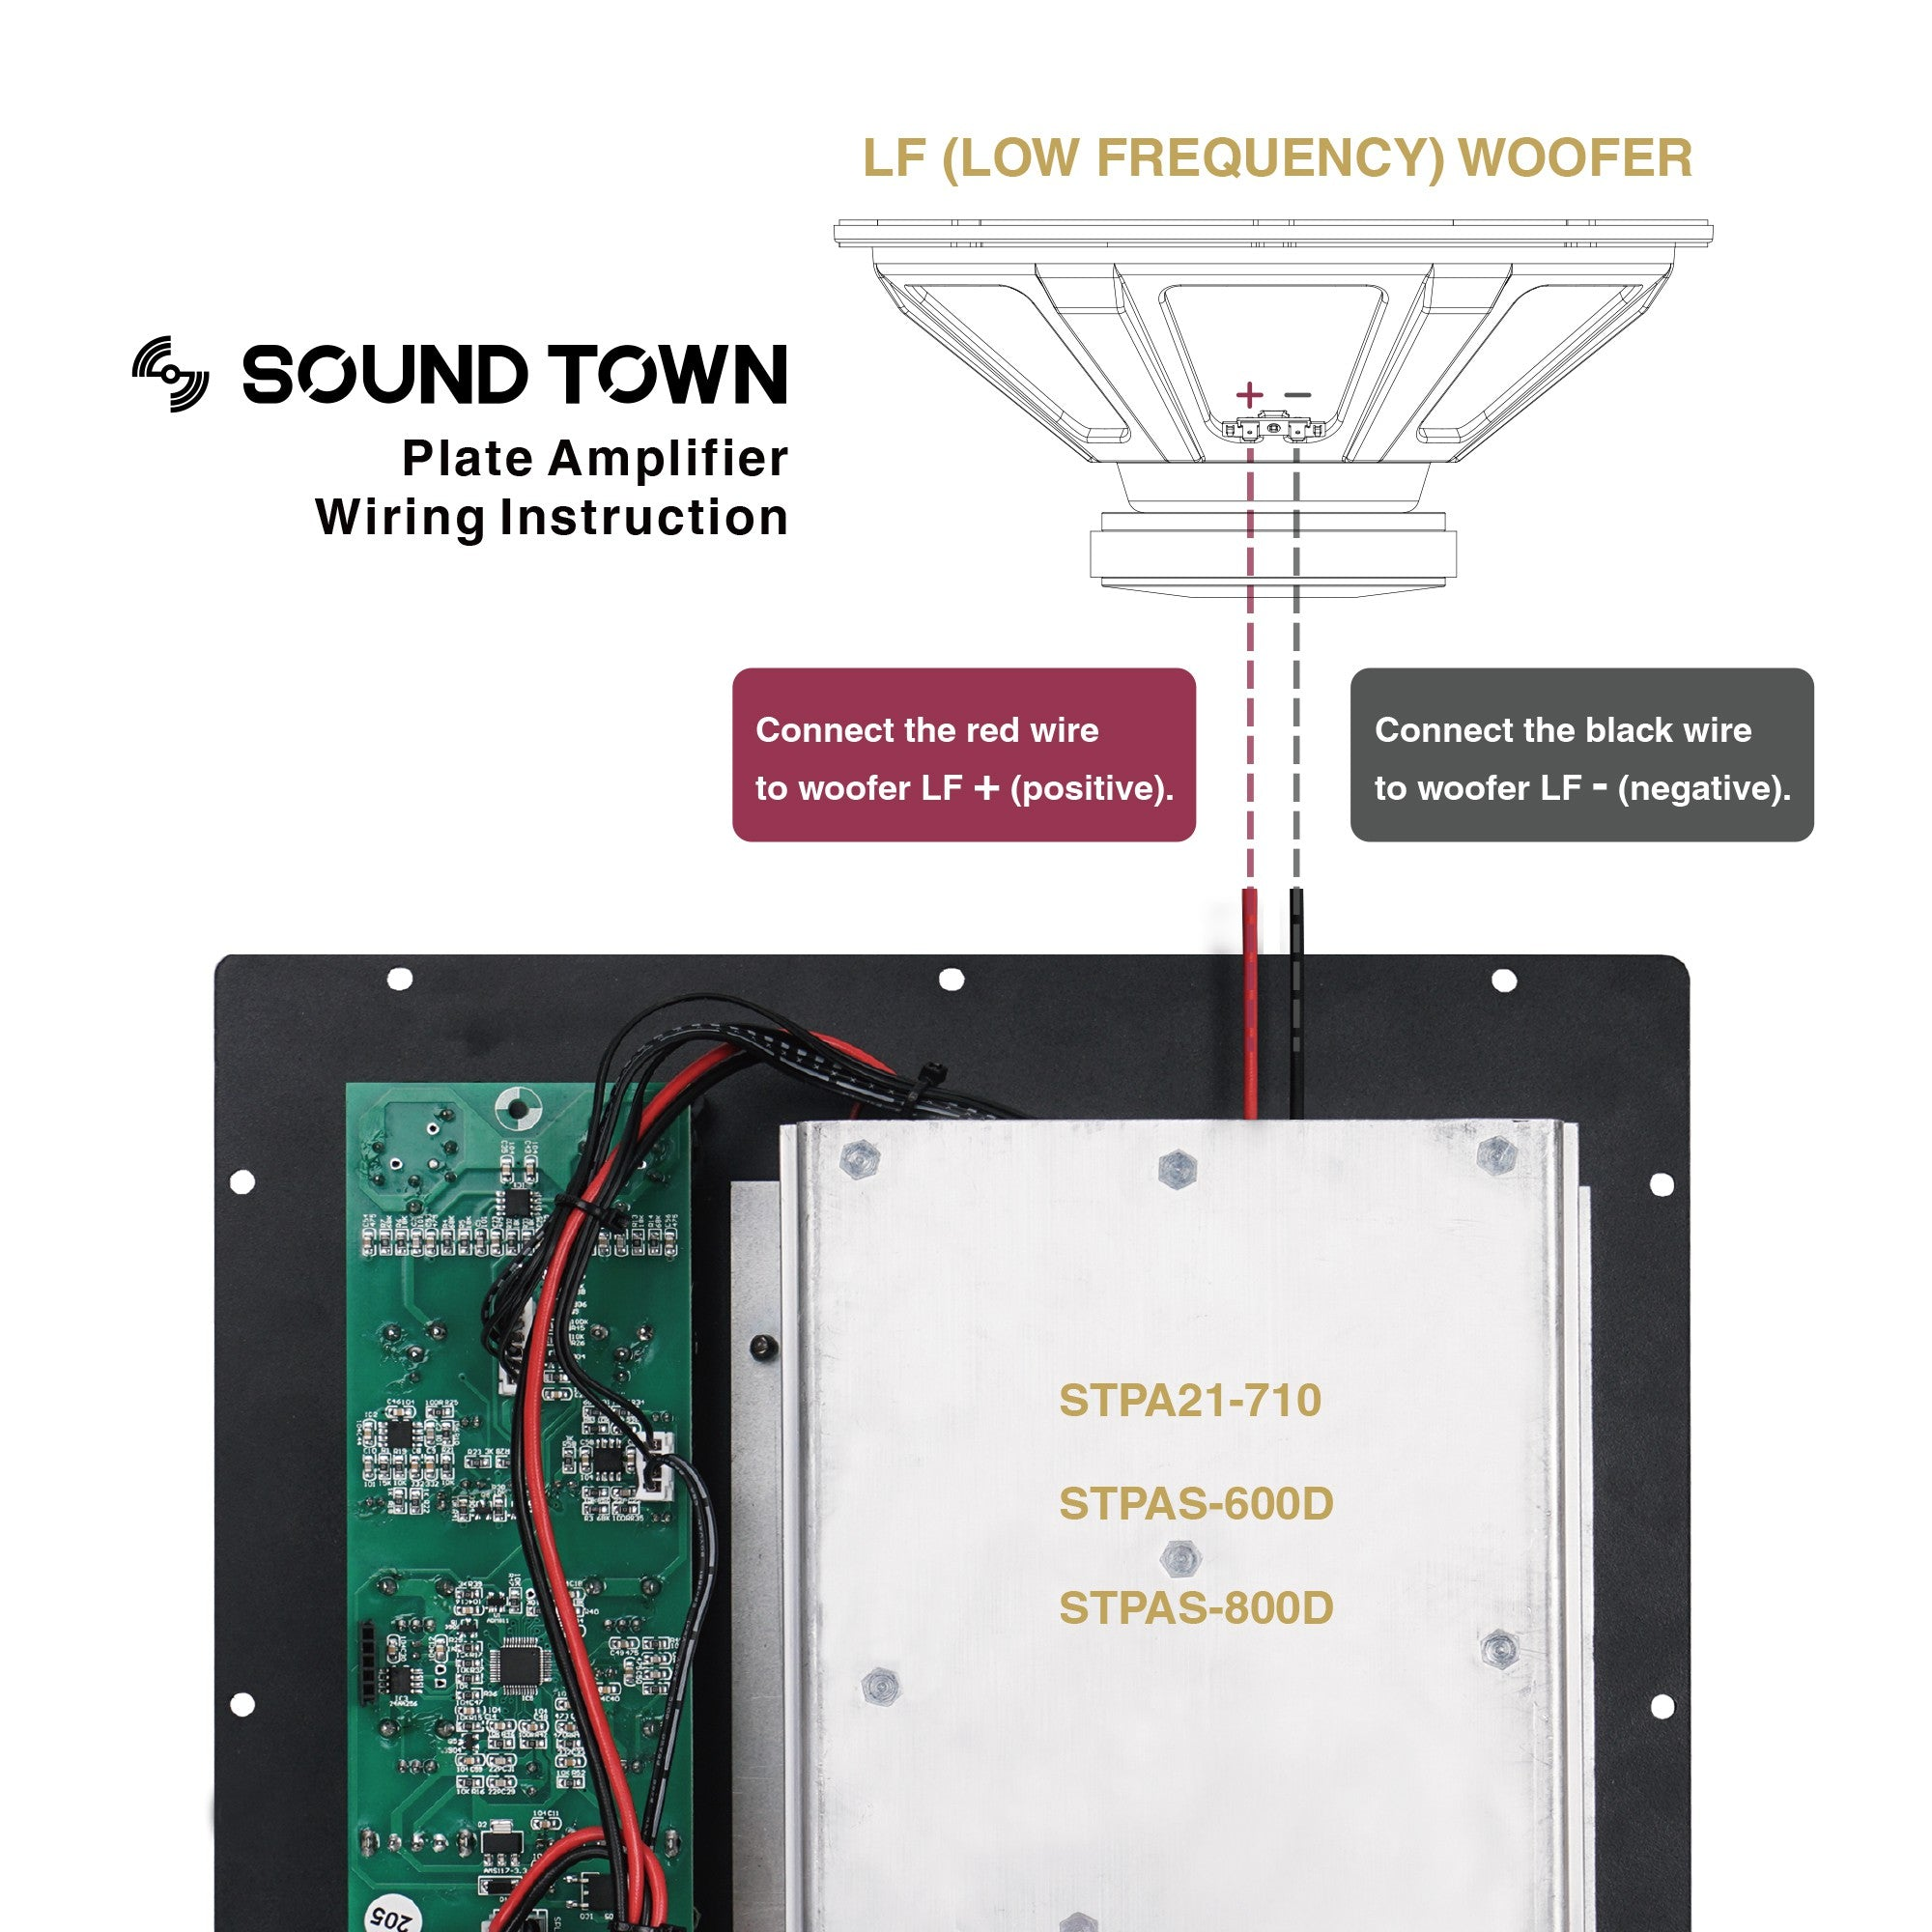 Sound Town STPAS-600D Class-D Plate Amplifier for PA DJ Subwoofer Cabinets, 350W RMS, w/ LPF - Plate Amplifier to LF (Low Frequency) Woofer Connection Diagram and Wiring Instructions